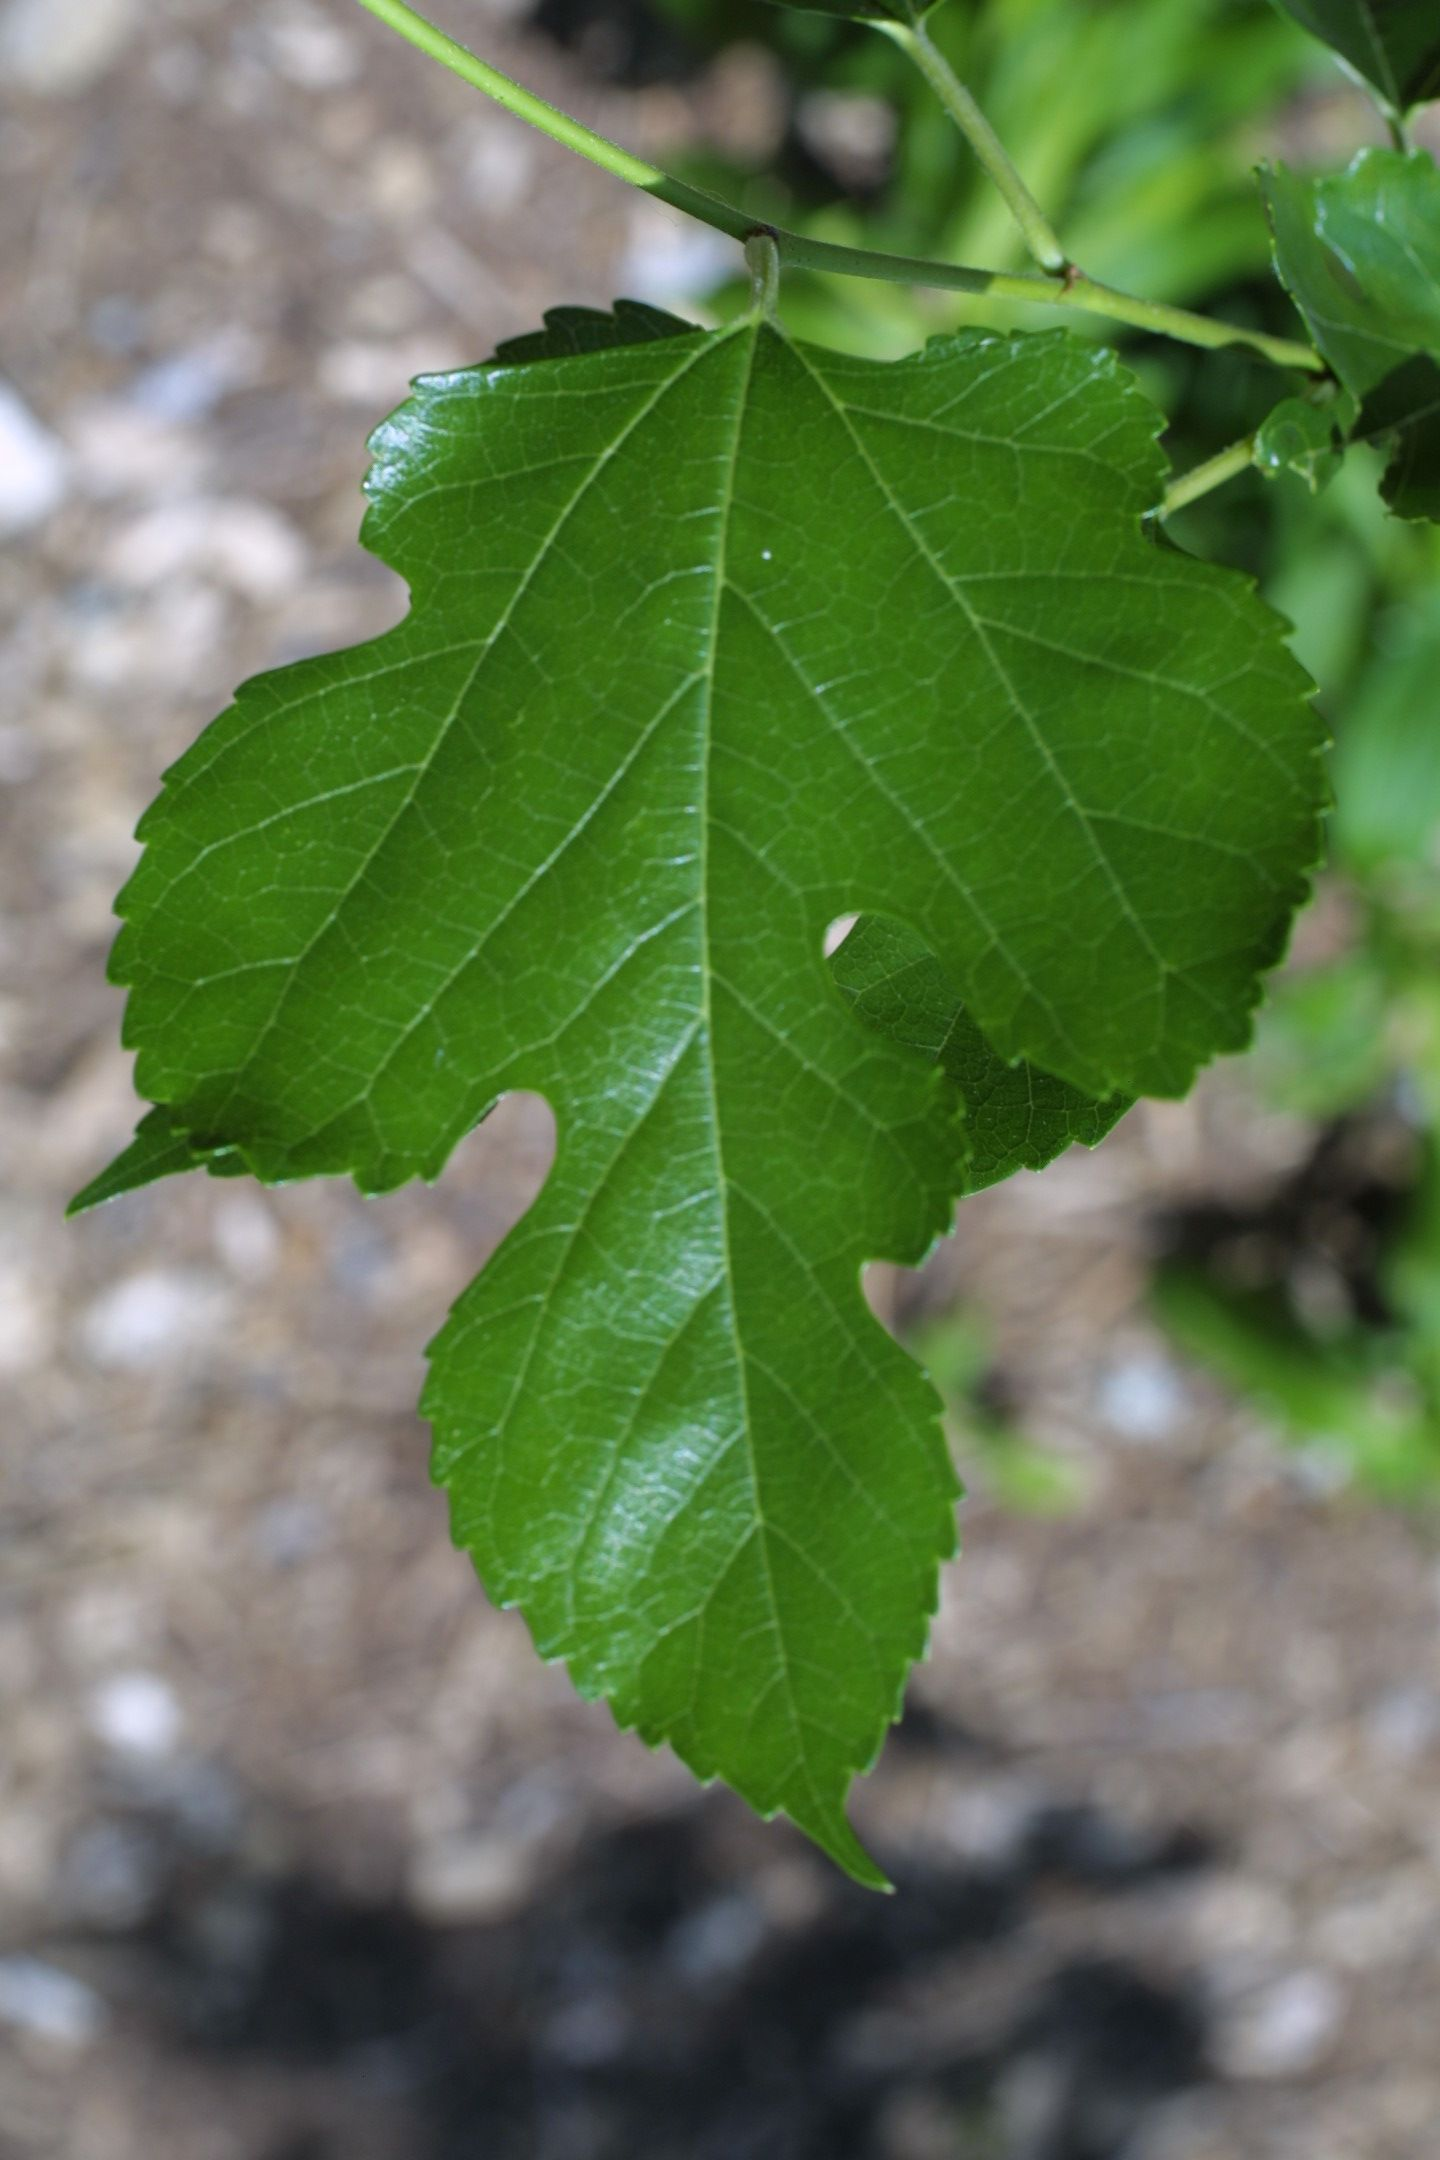 The Red Mulberry, or Morus Rubra, has a rough and fuzzy ...